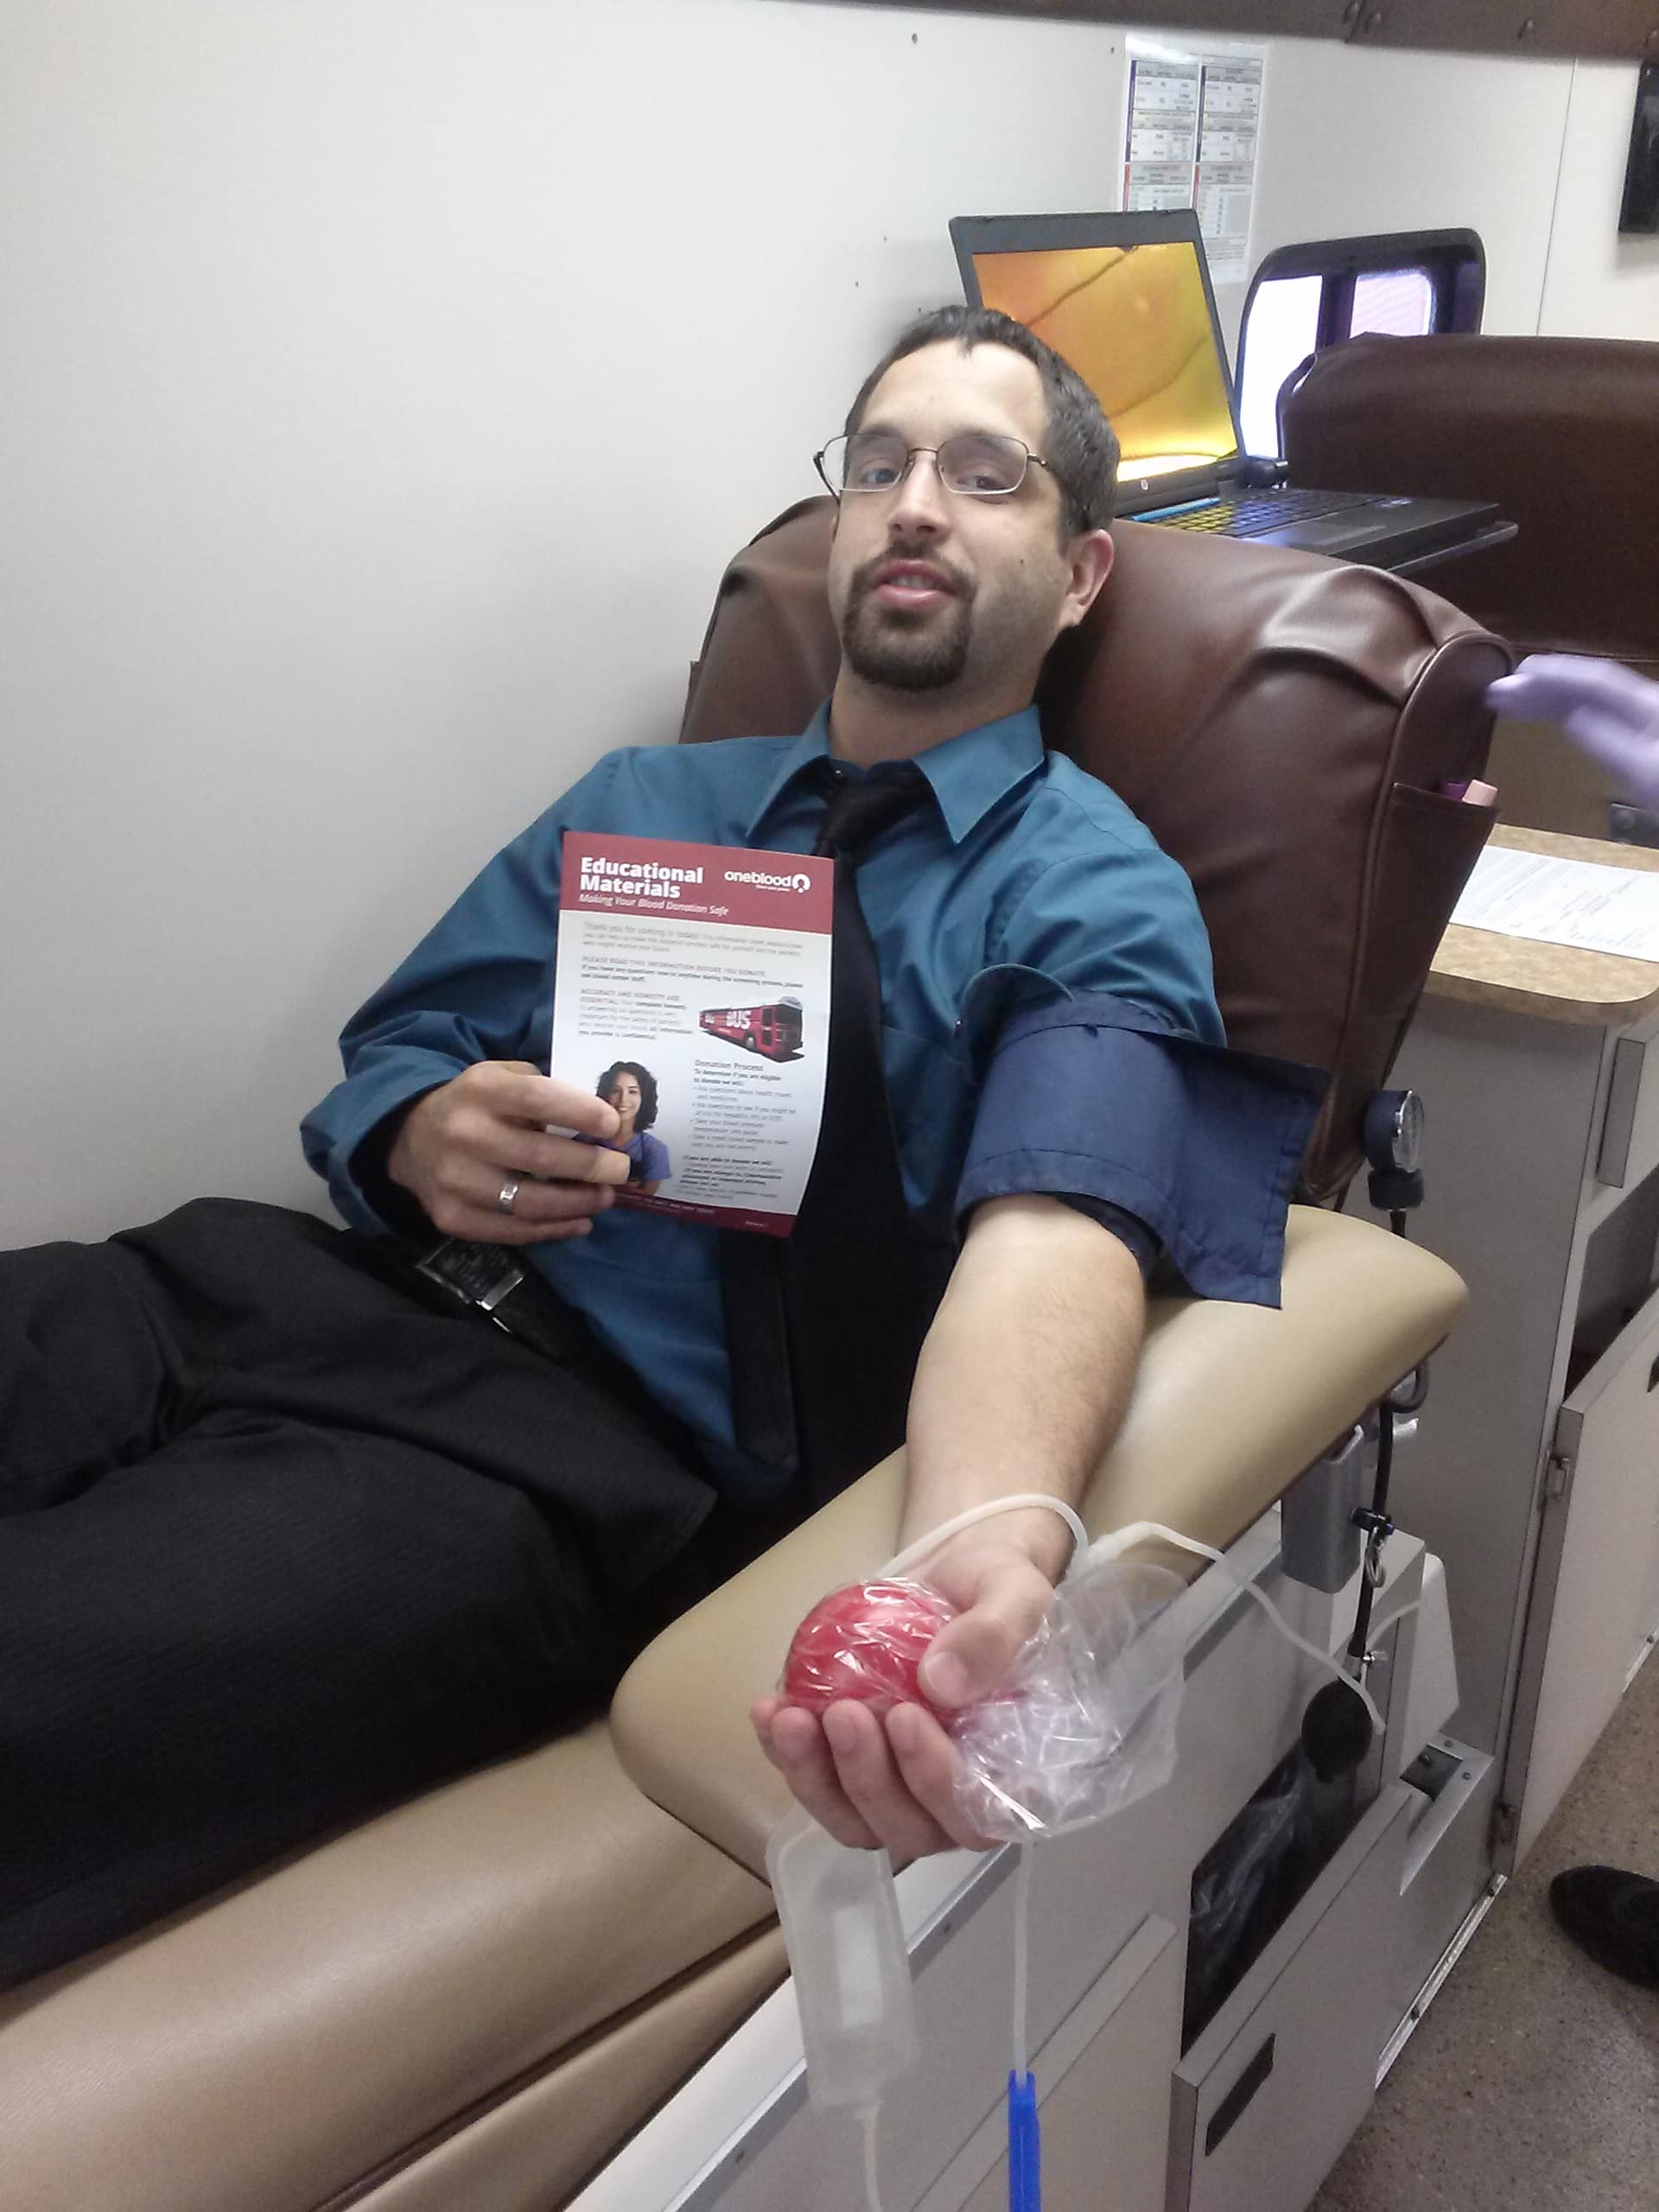 Fort Myers Campus Hosts Starve A Vampire Blood Drive (Just In Time For Halloween)